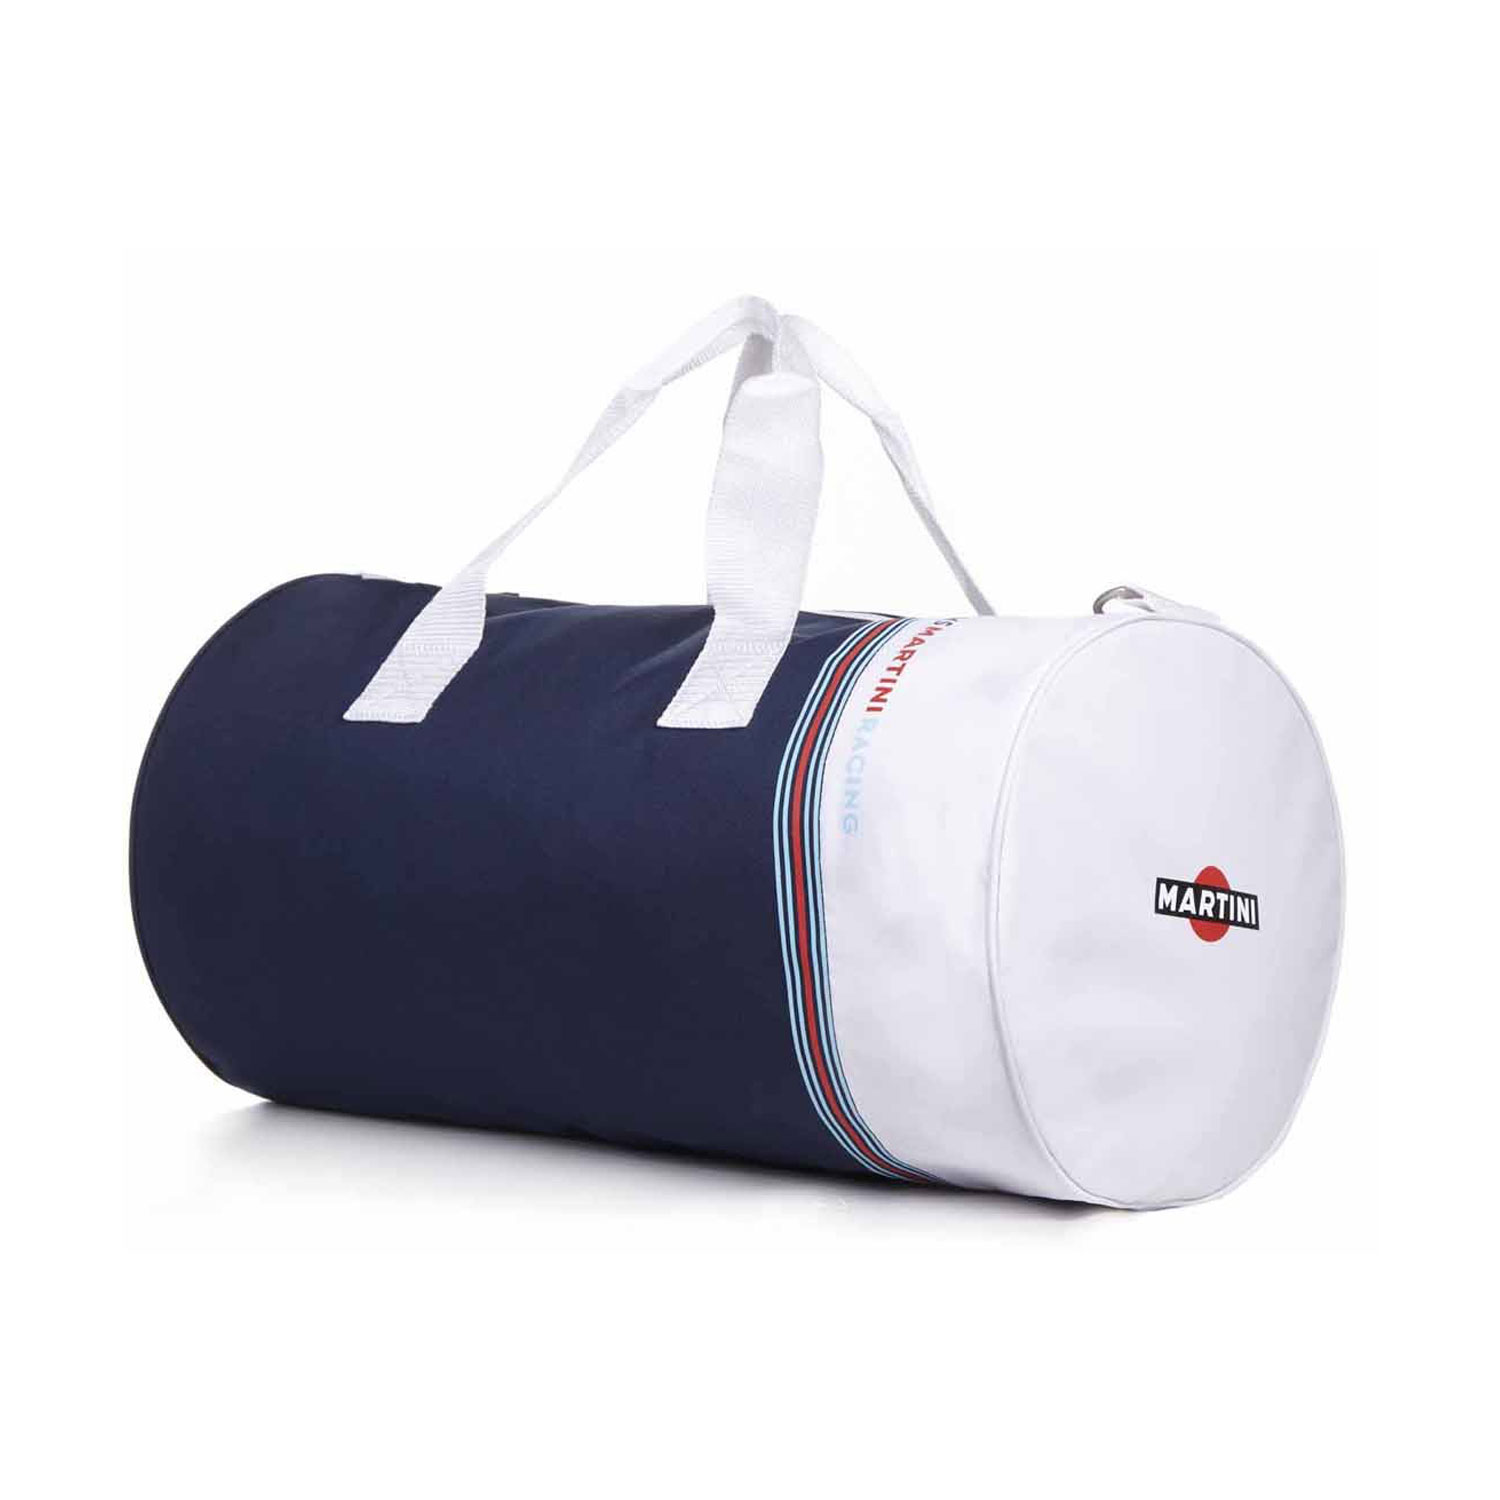 4b46a8c91 FAN Williams Racing Formula 1 Team Sports Duffle Bag | Accesories ...